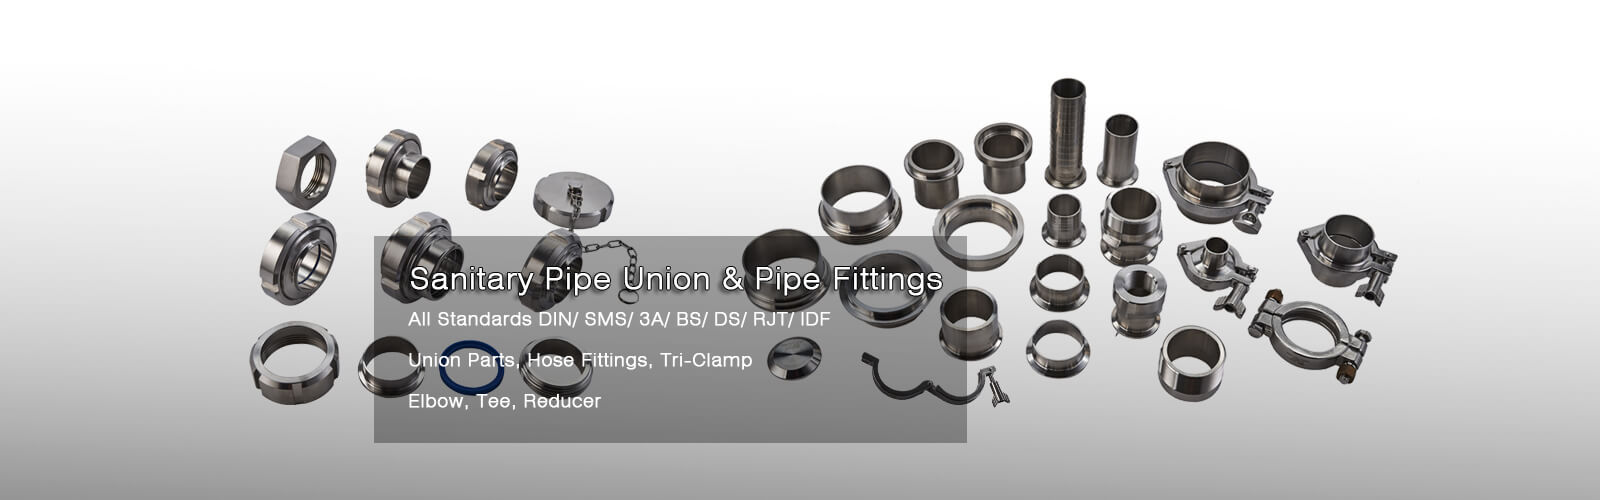 Sanitary pipe union & pipe fittings